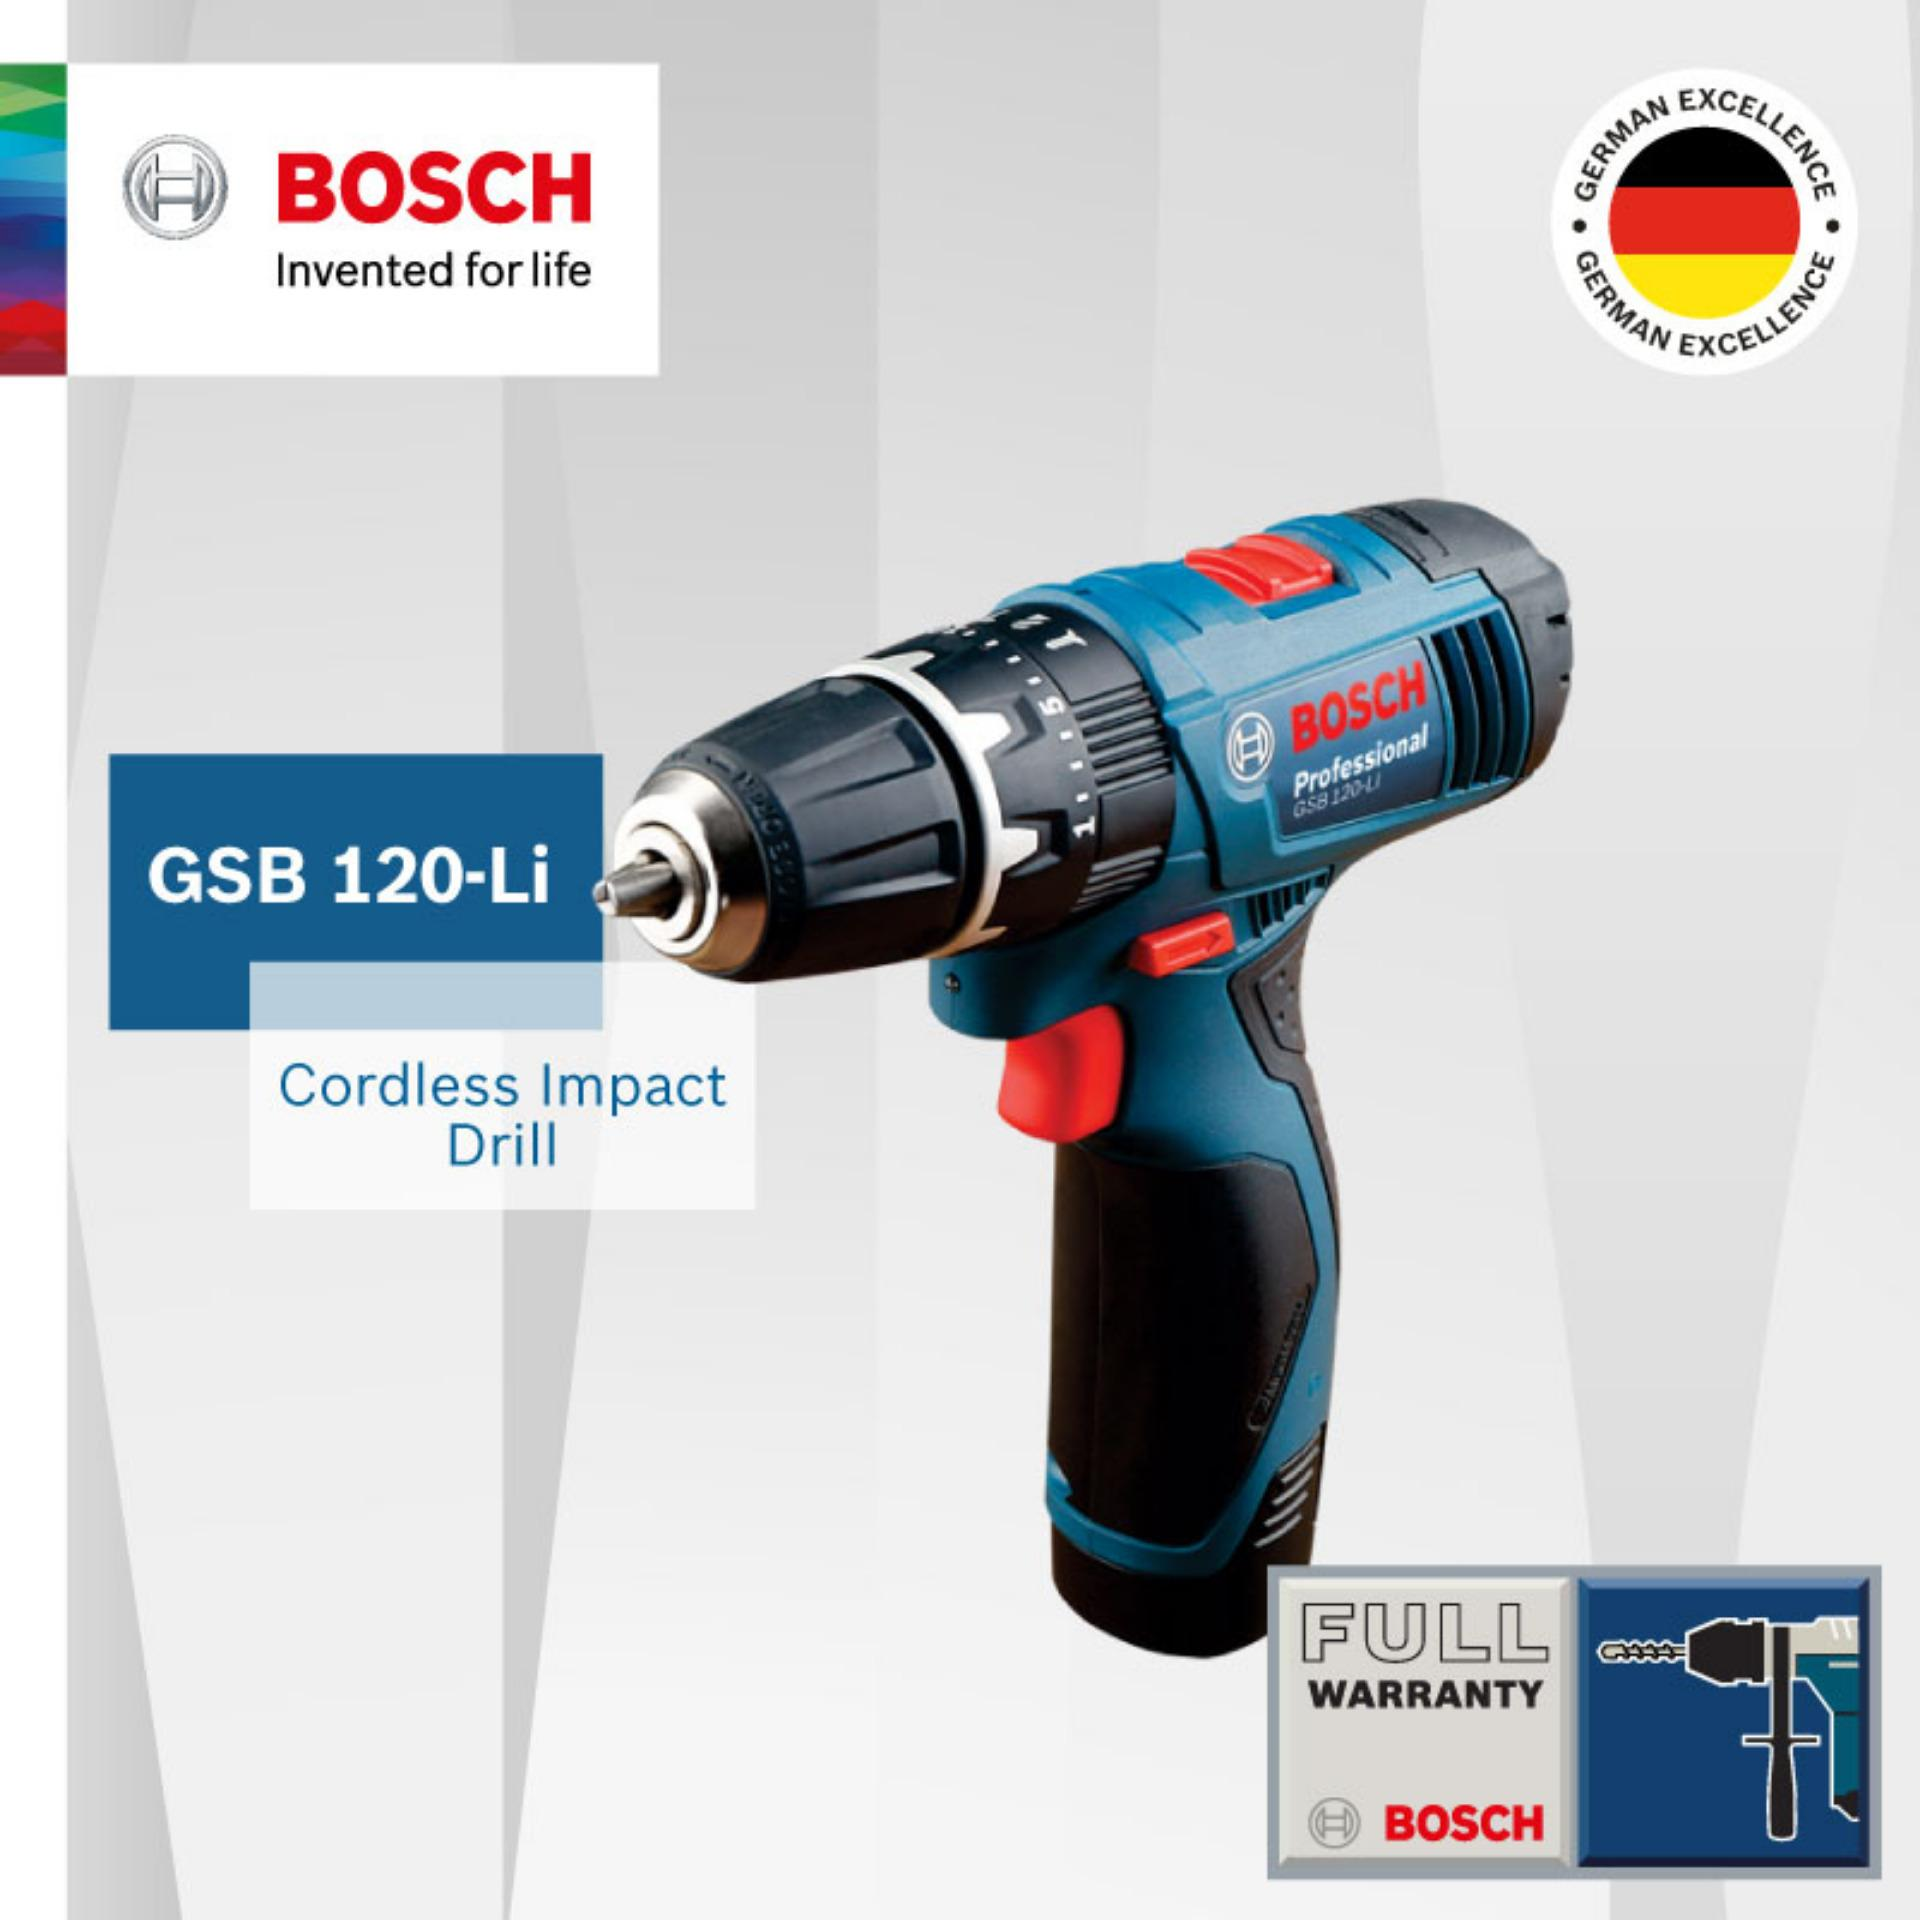 Best Offer Bosch Gsb 120 Li Cordless Impact Drill Set